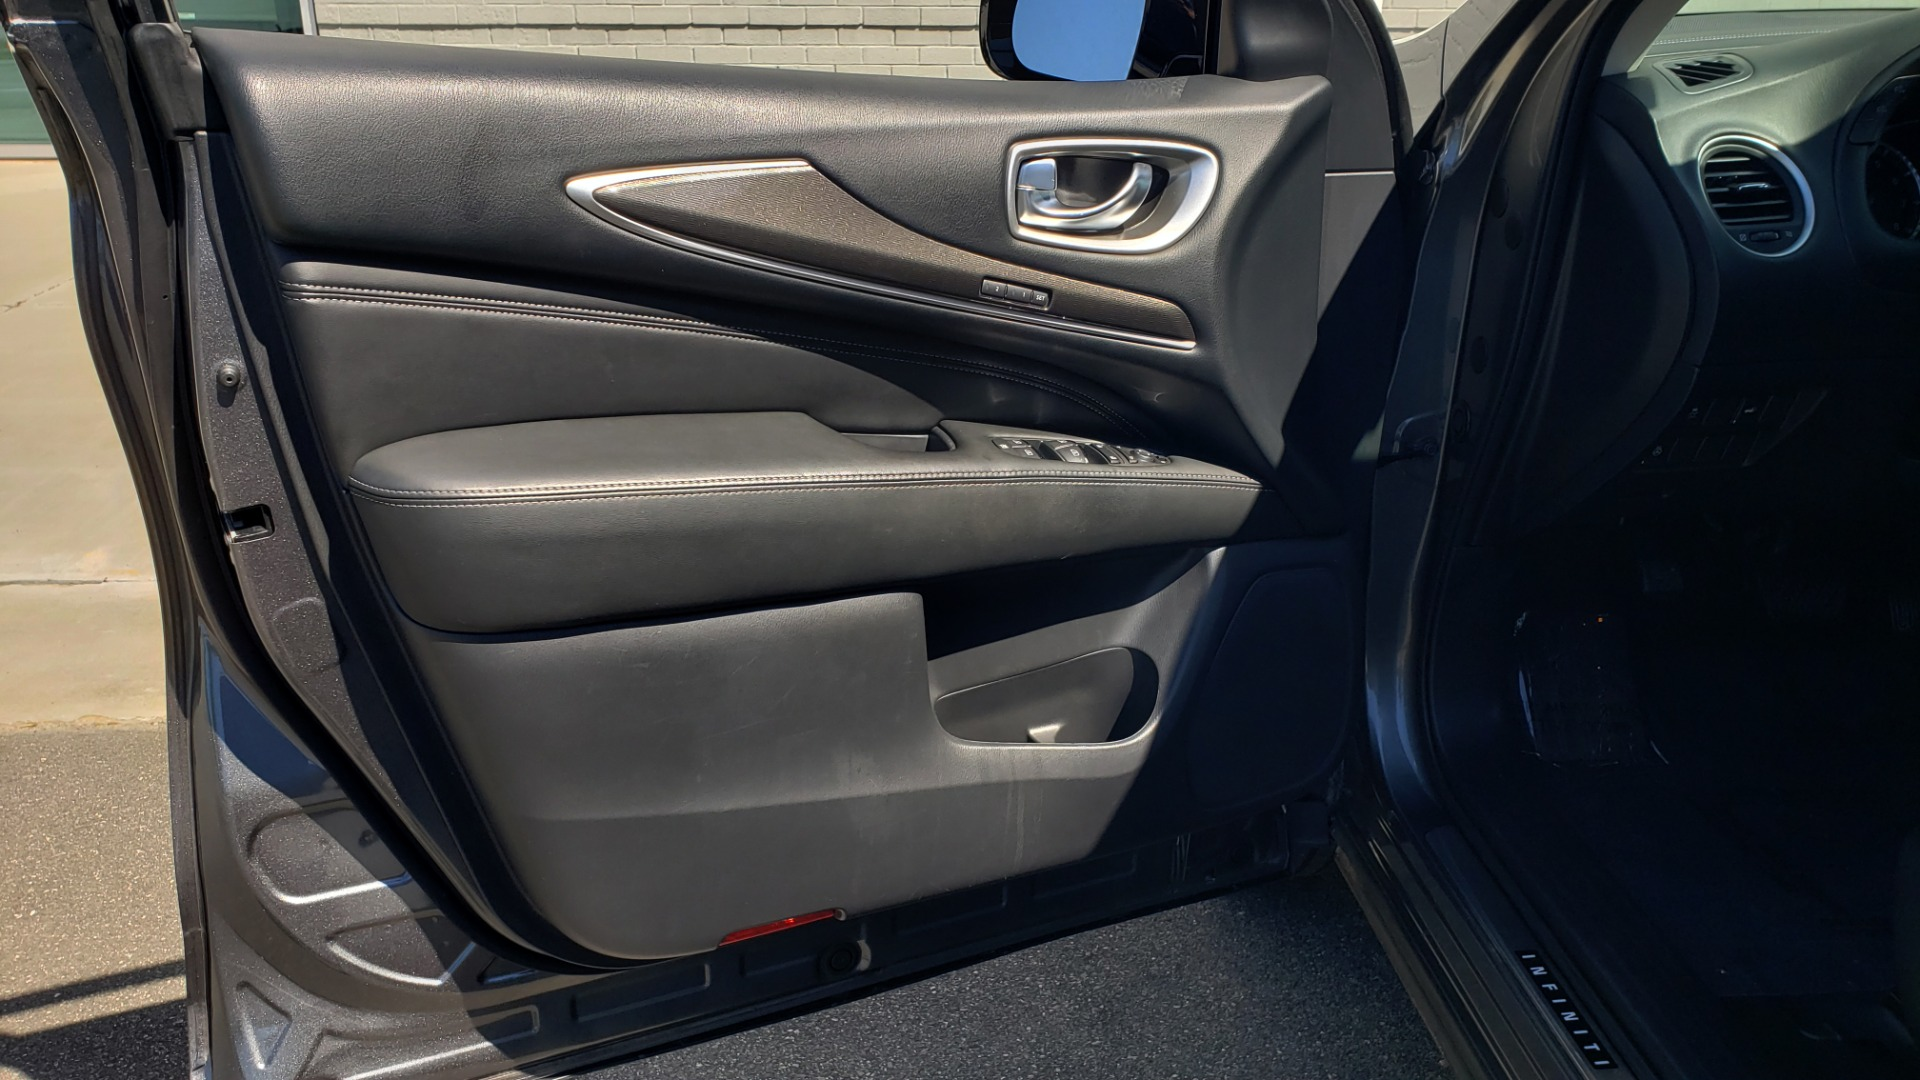 Used 2018 INFINITI QX60 3.5L V6 / FWD / CVT TRANS / NAV / SUNROOF / 3-ROWS / REARVIEW for sale $31,999 at Formula Imports in Charlotte NC 28227 37